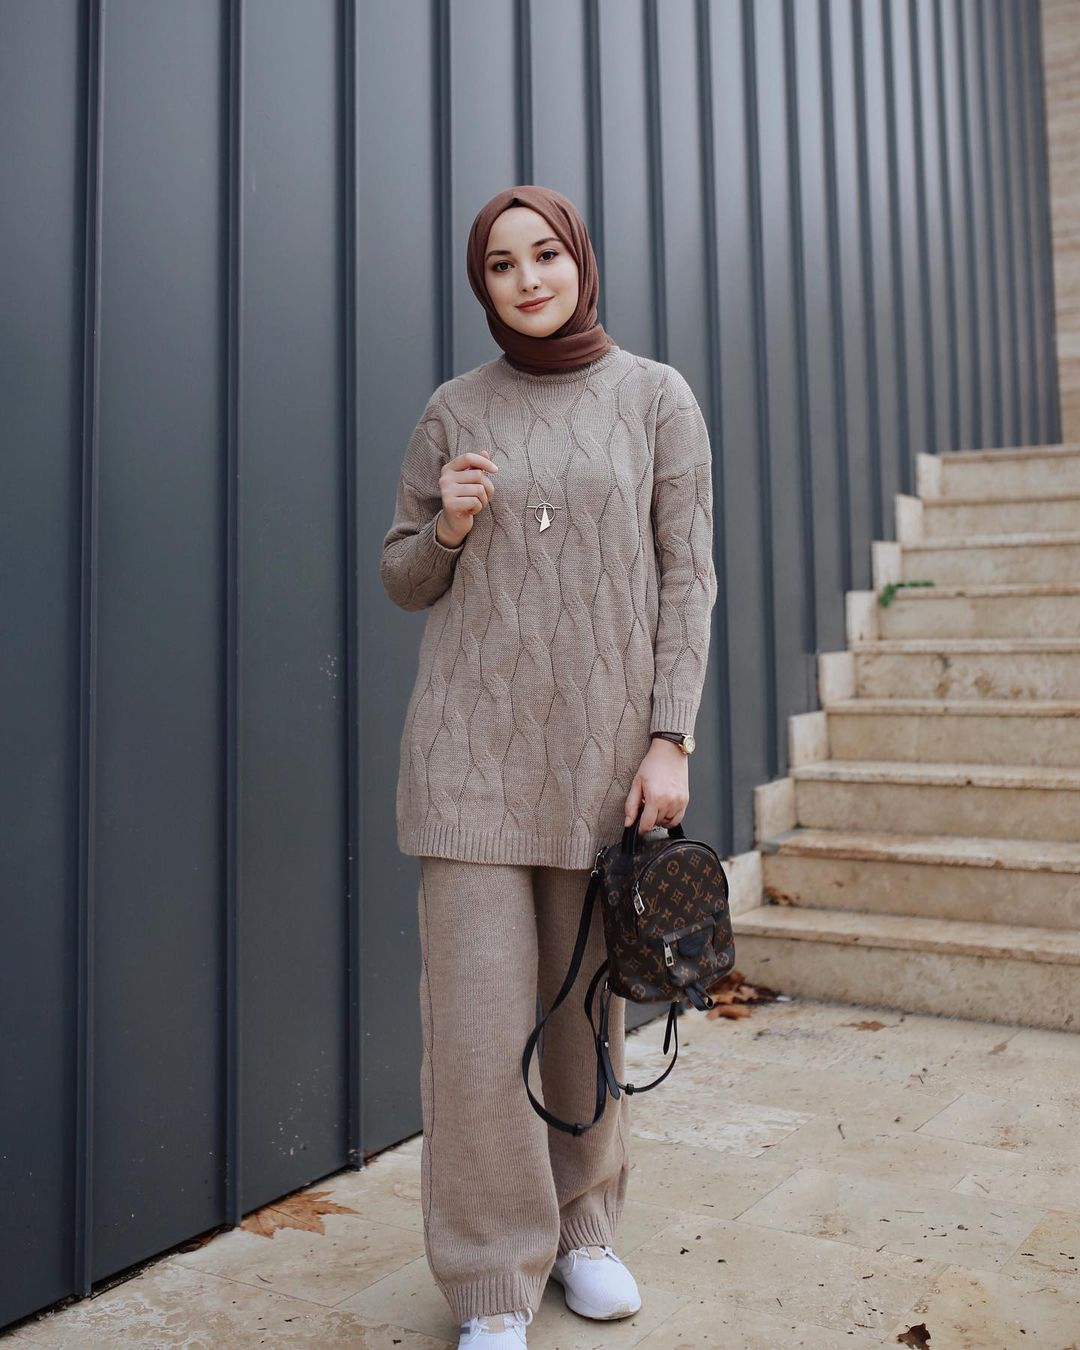 Hijab Earth Tone Outfit Ideas For Basic Girls